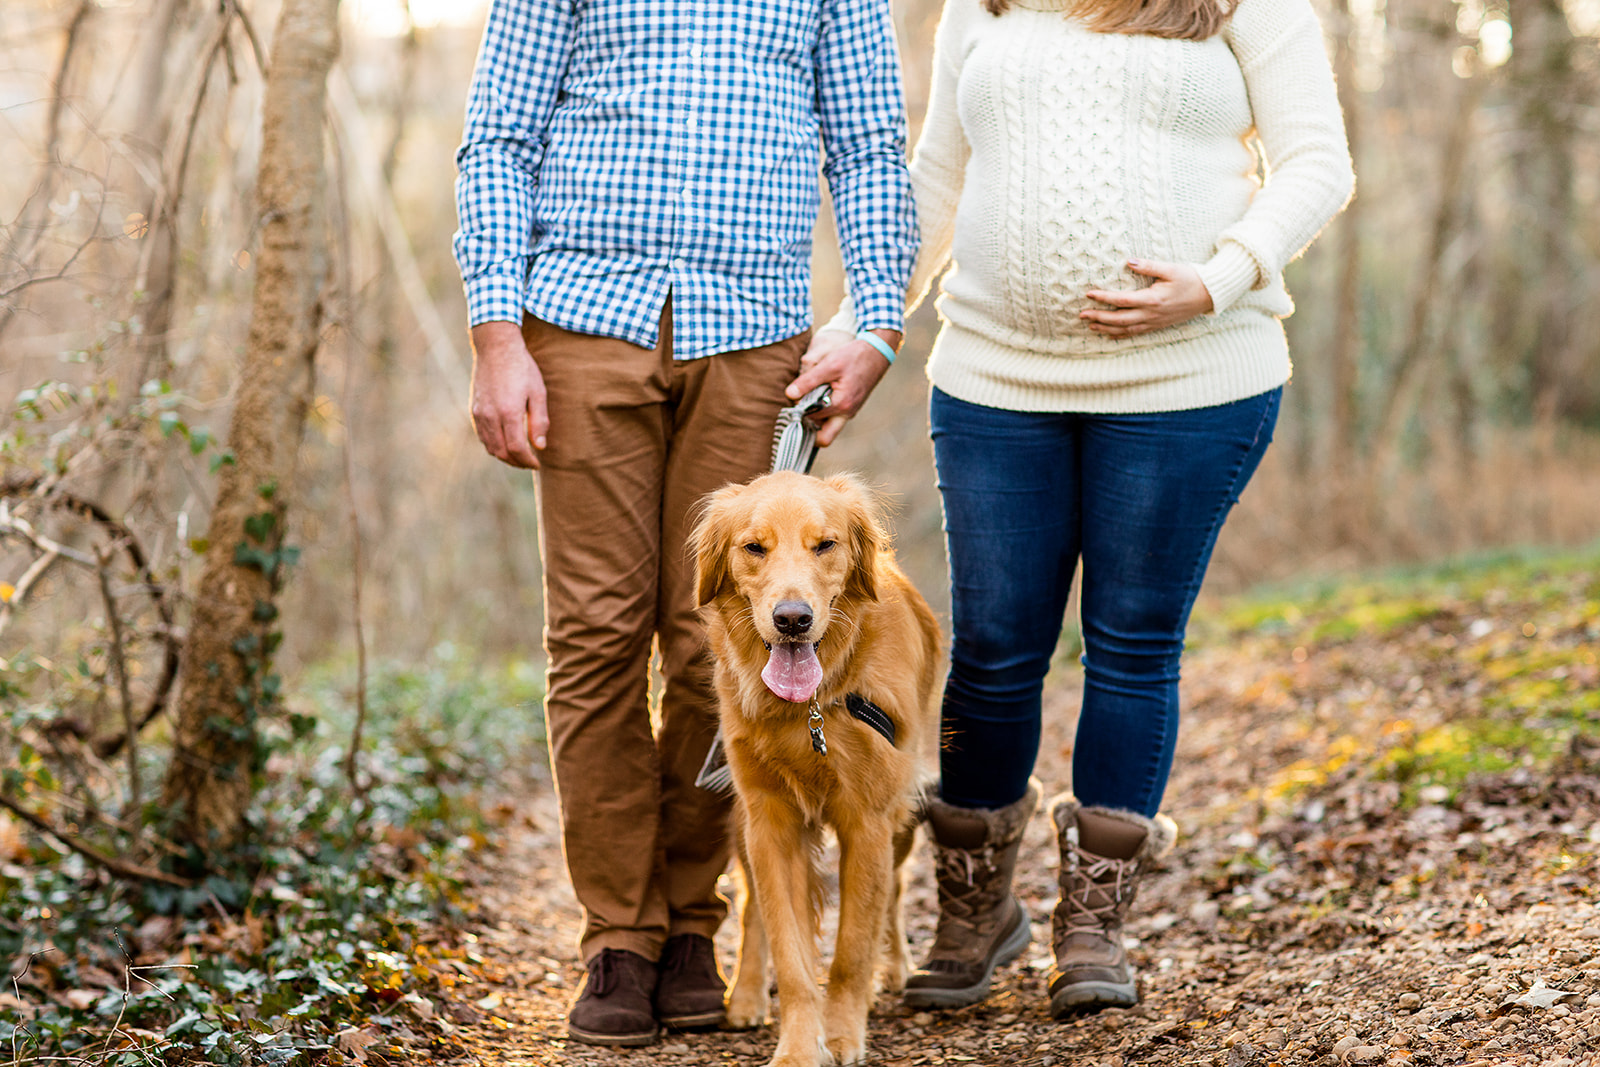 Casi  Christians Golden Retriever Filled Maternity Shoot - Image Property of www.j-dphoto.com